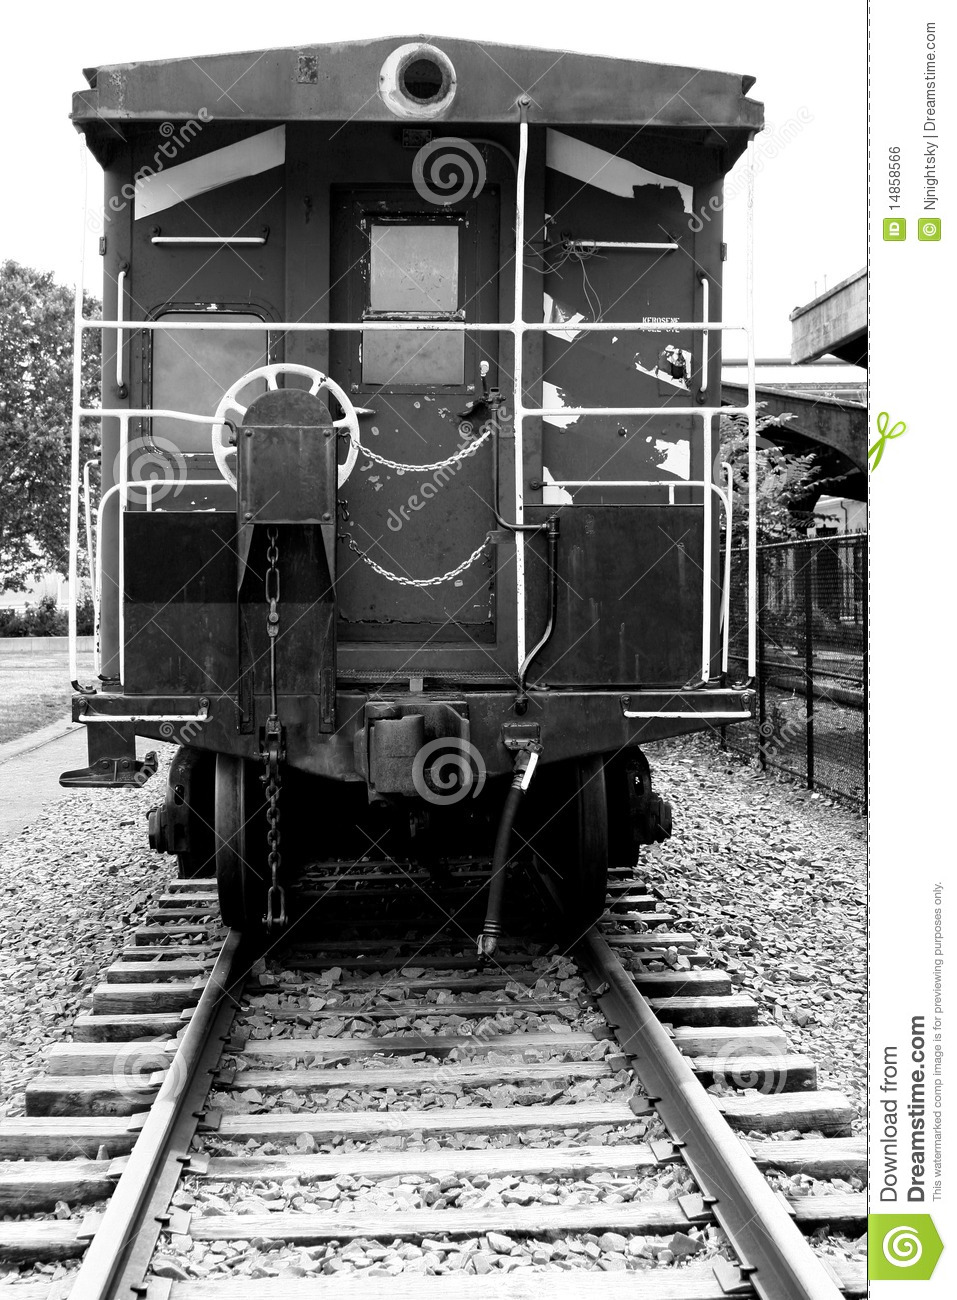 Rear view of a train caboose